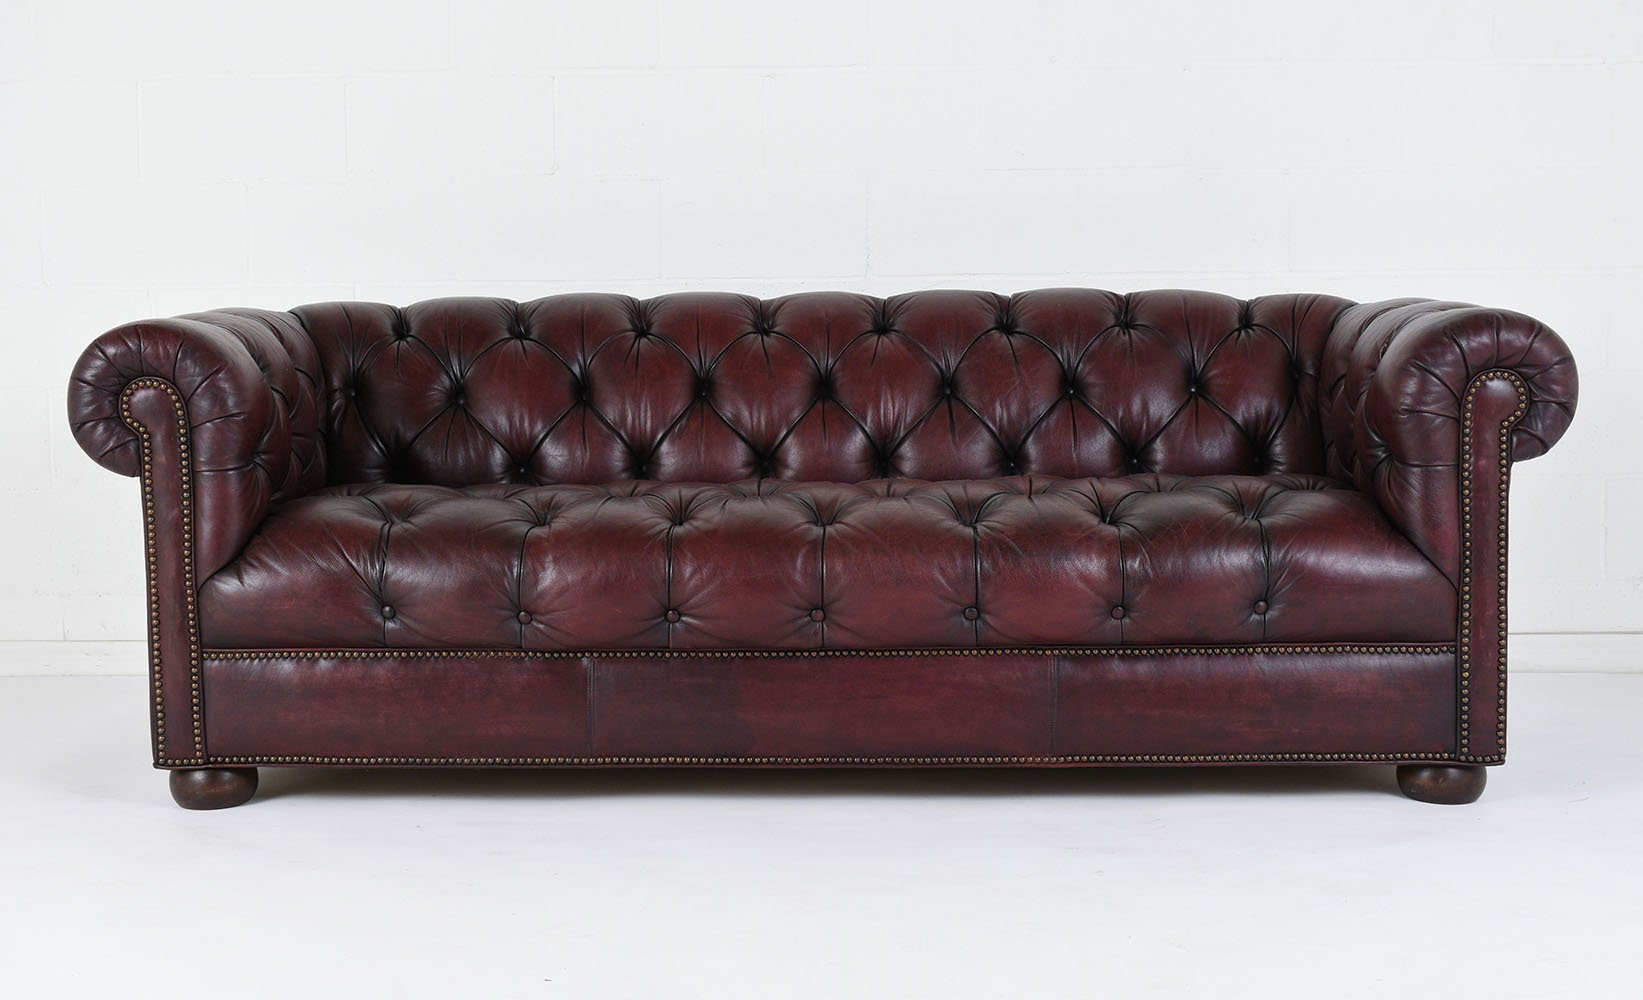 vintage tufted leather sofa 1970s for sale at pamono. Black Bedroom Furniture Sets. Home Design Ideas